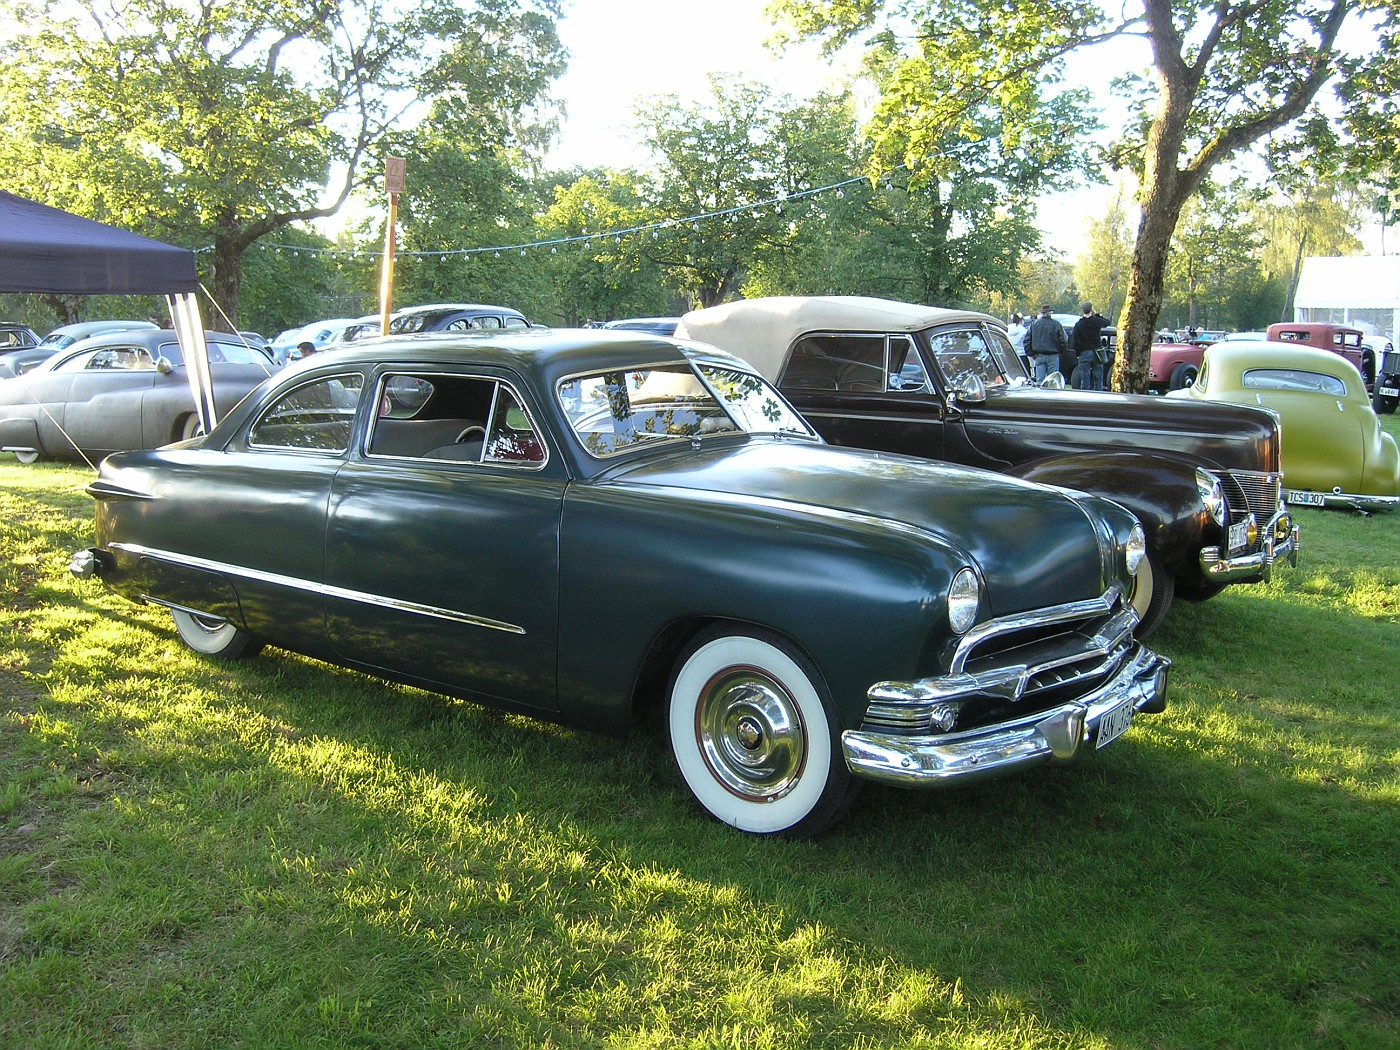 Photo p8030156 edgar 39 s 1951 ford ex 4 door album rik for 1951 ford 4 door sedan